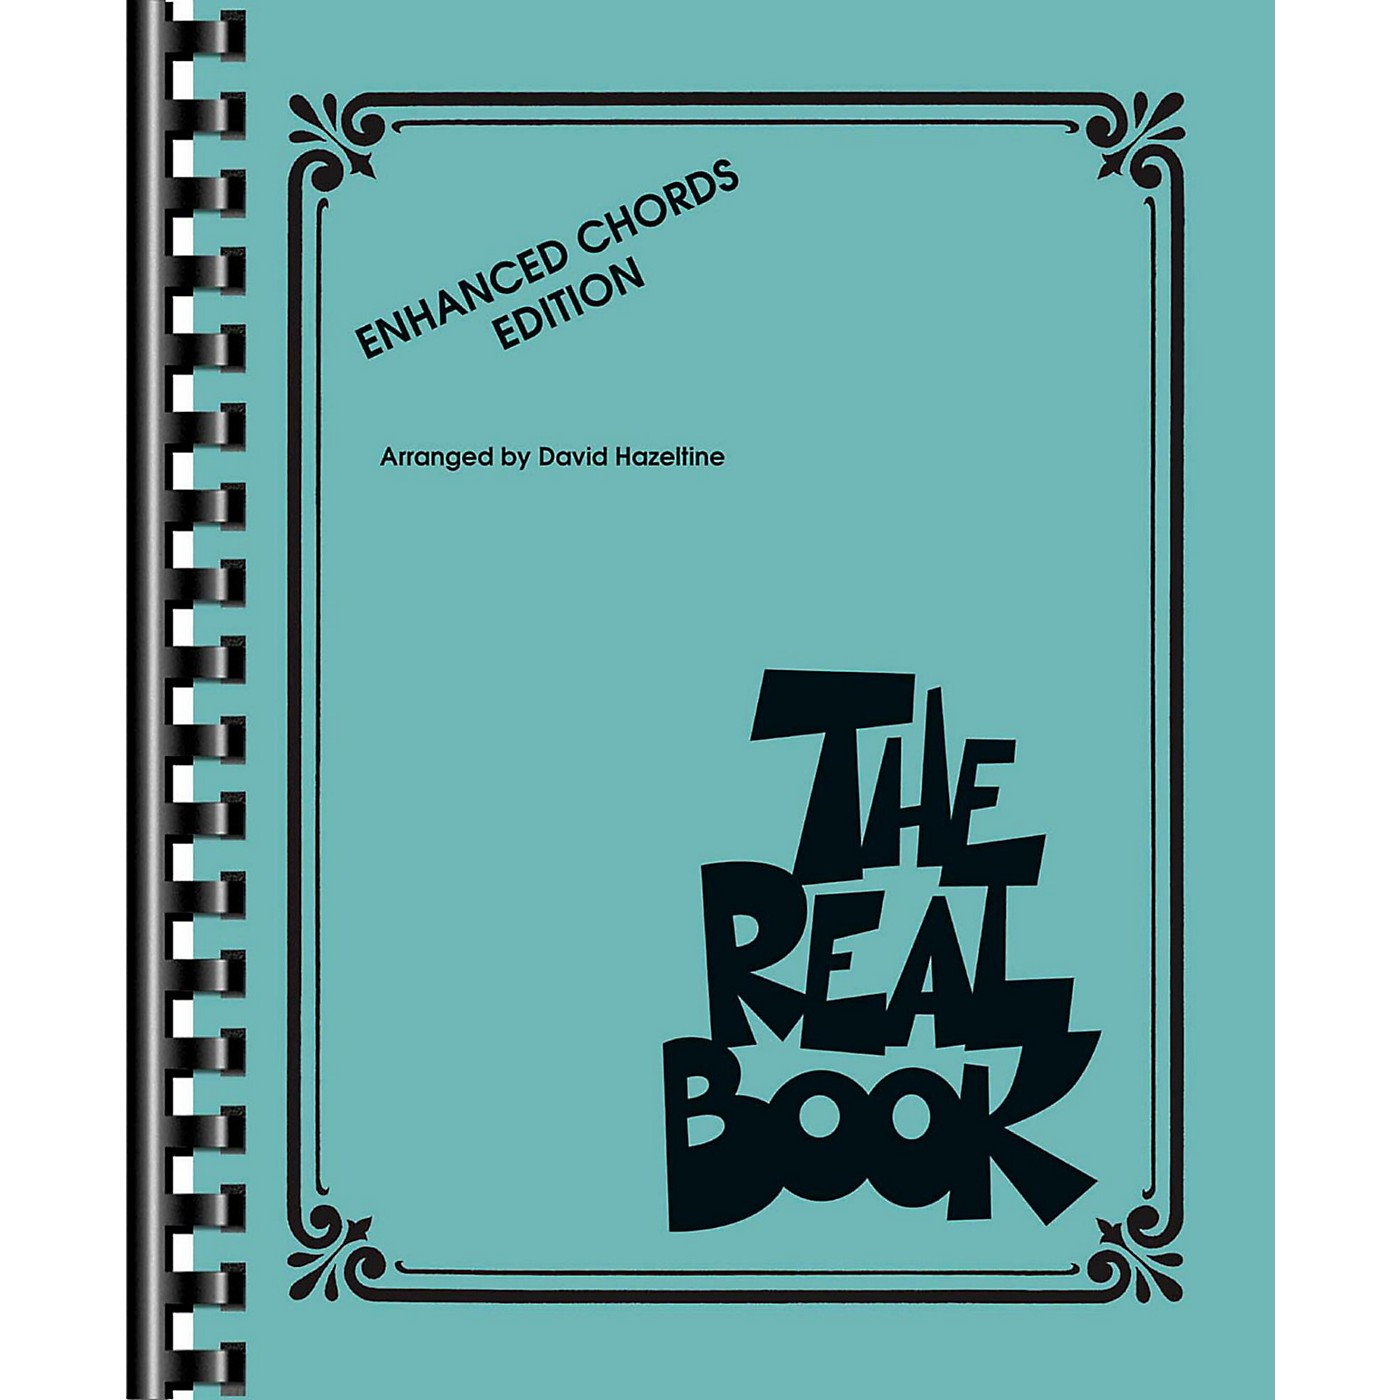 Hal Leonard The Real Book - Enhanced Chords Edition thumbnail